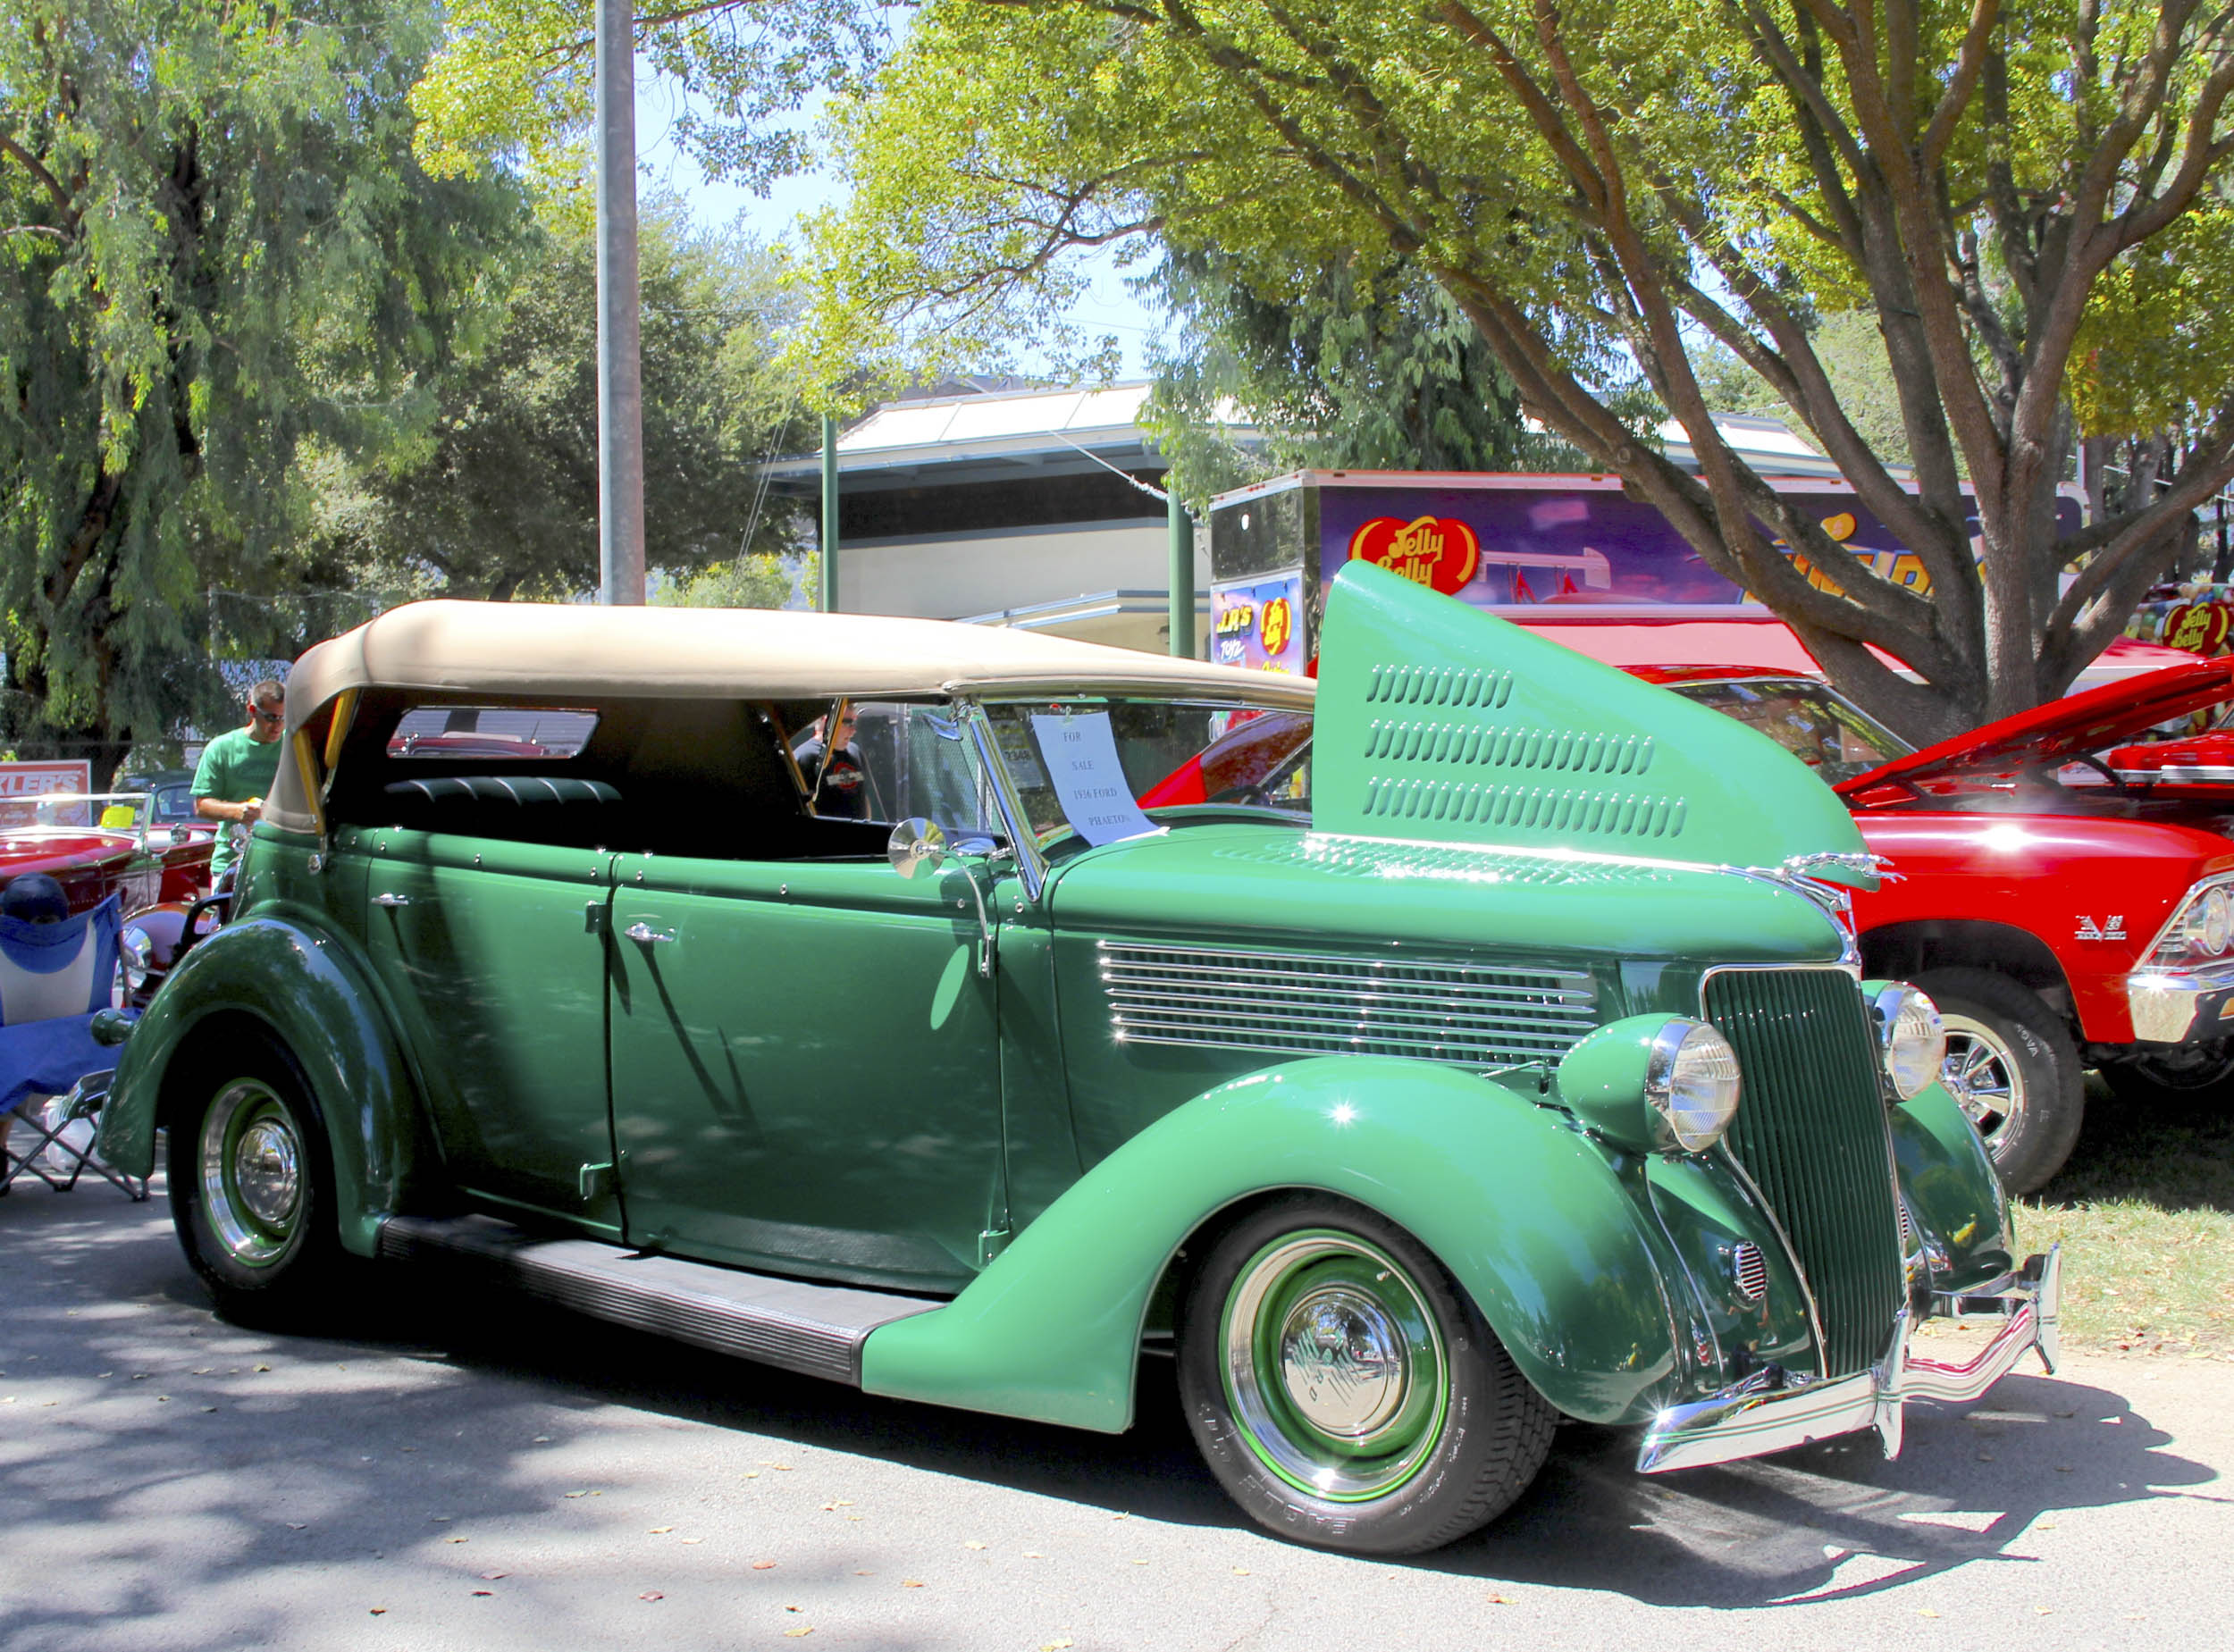 1936 Ford phaeton, is one of 5555 examples built.